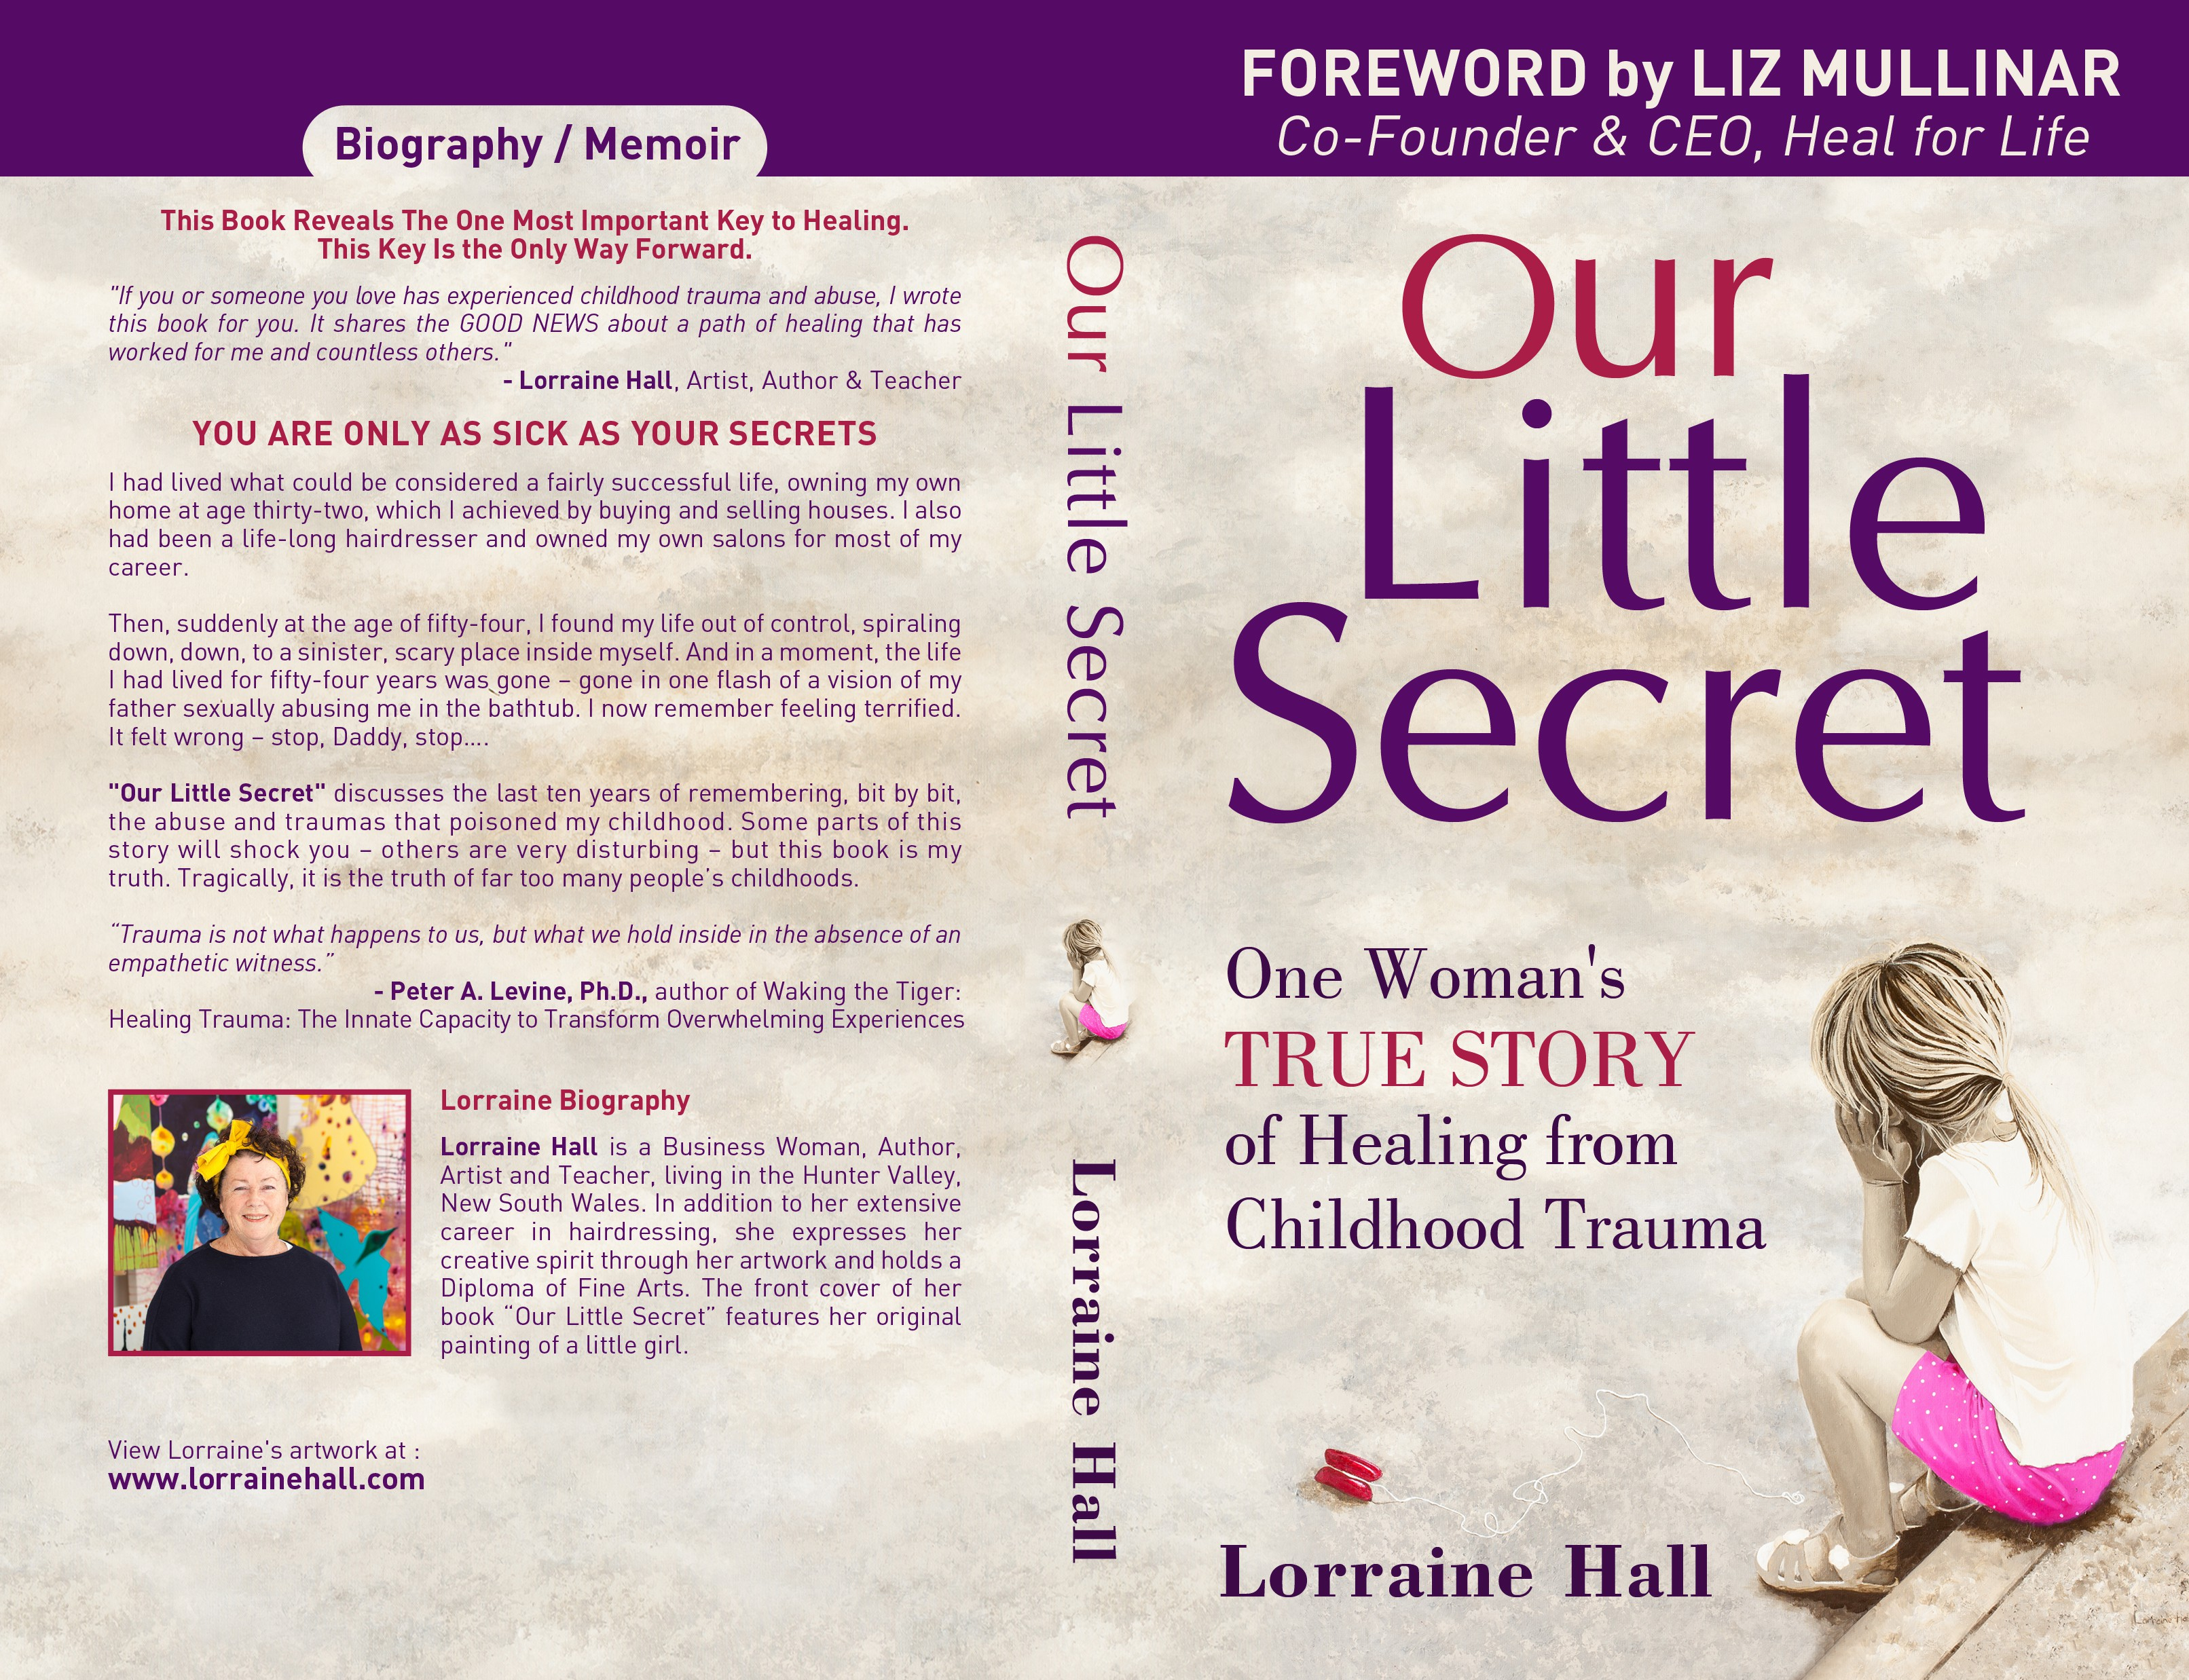 Inspiring True Story of One Woman's Healing from Childhood Abuse